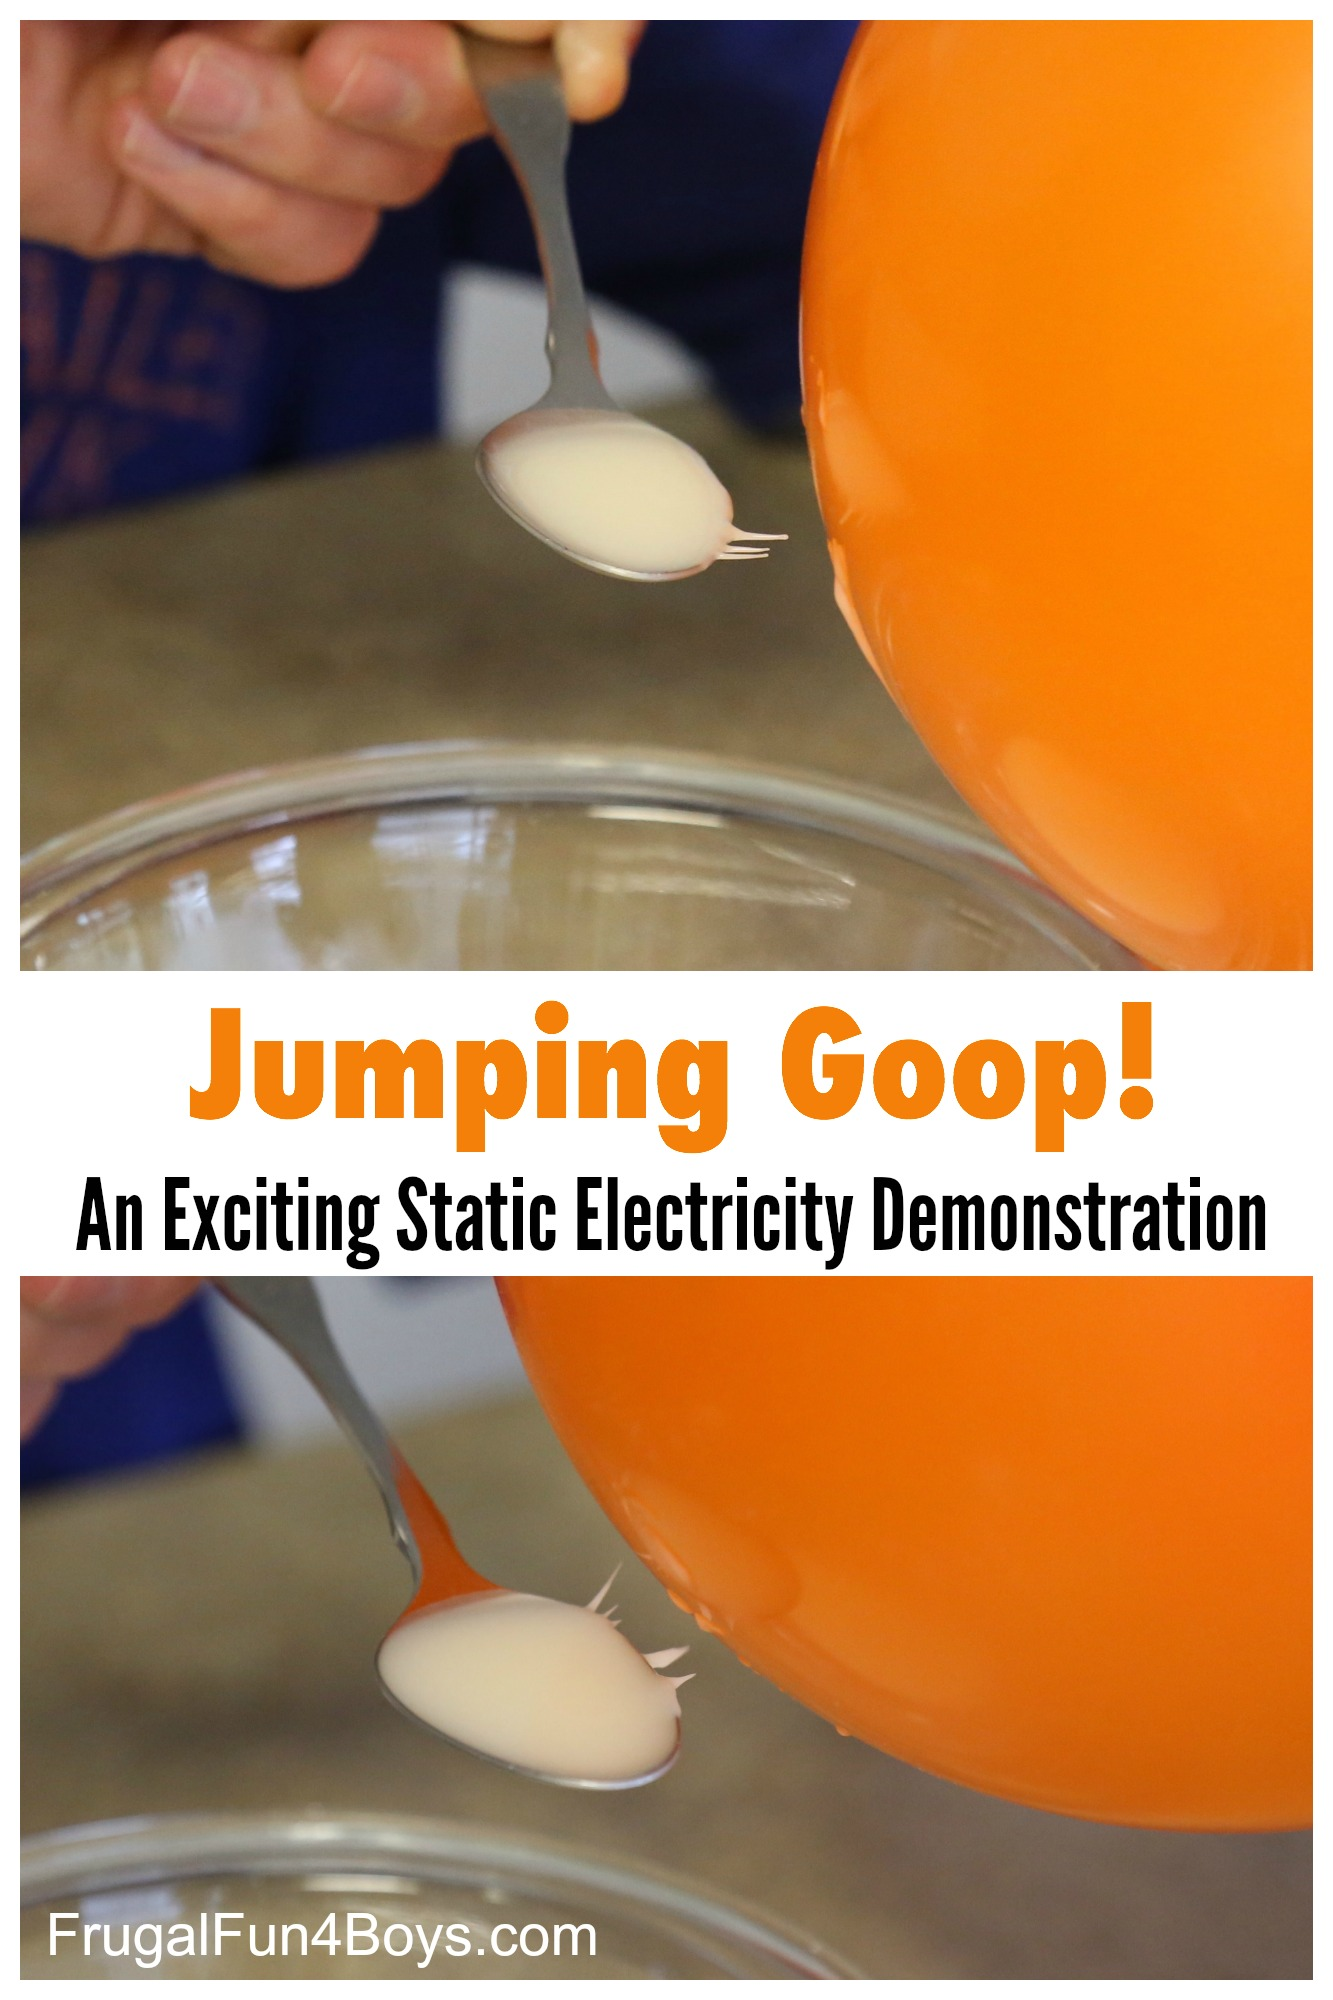 Jumping Goop! An exciting static electricity demonstration for kids!